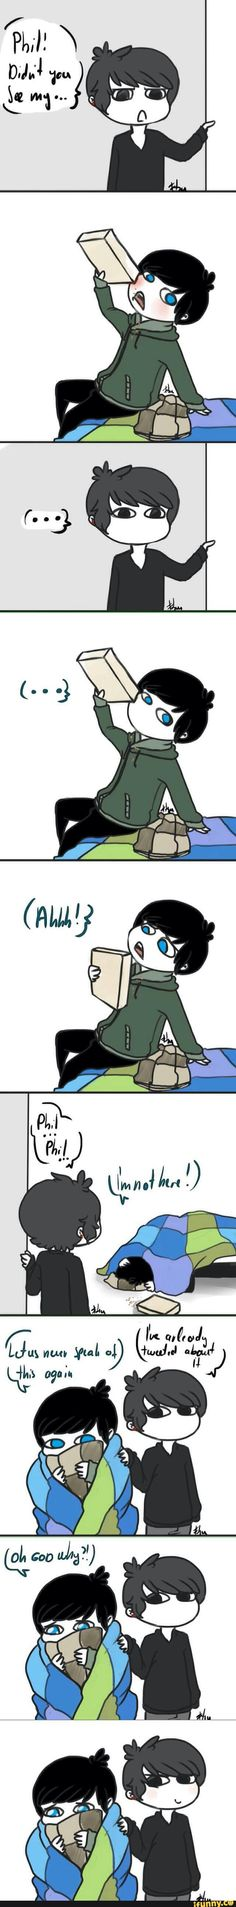 XD SOME ONE DREW IT! Also, this person is good at drawing :3